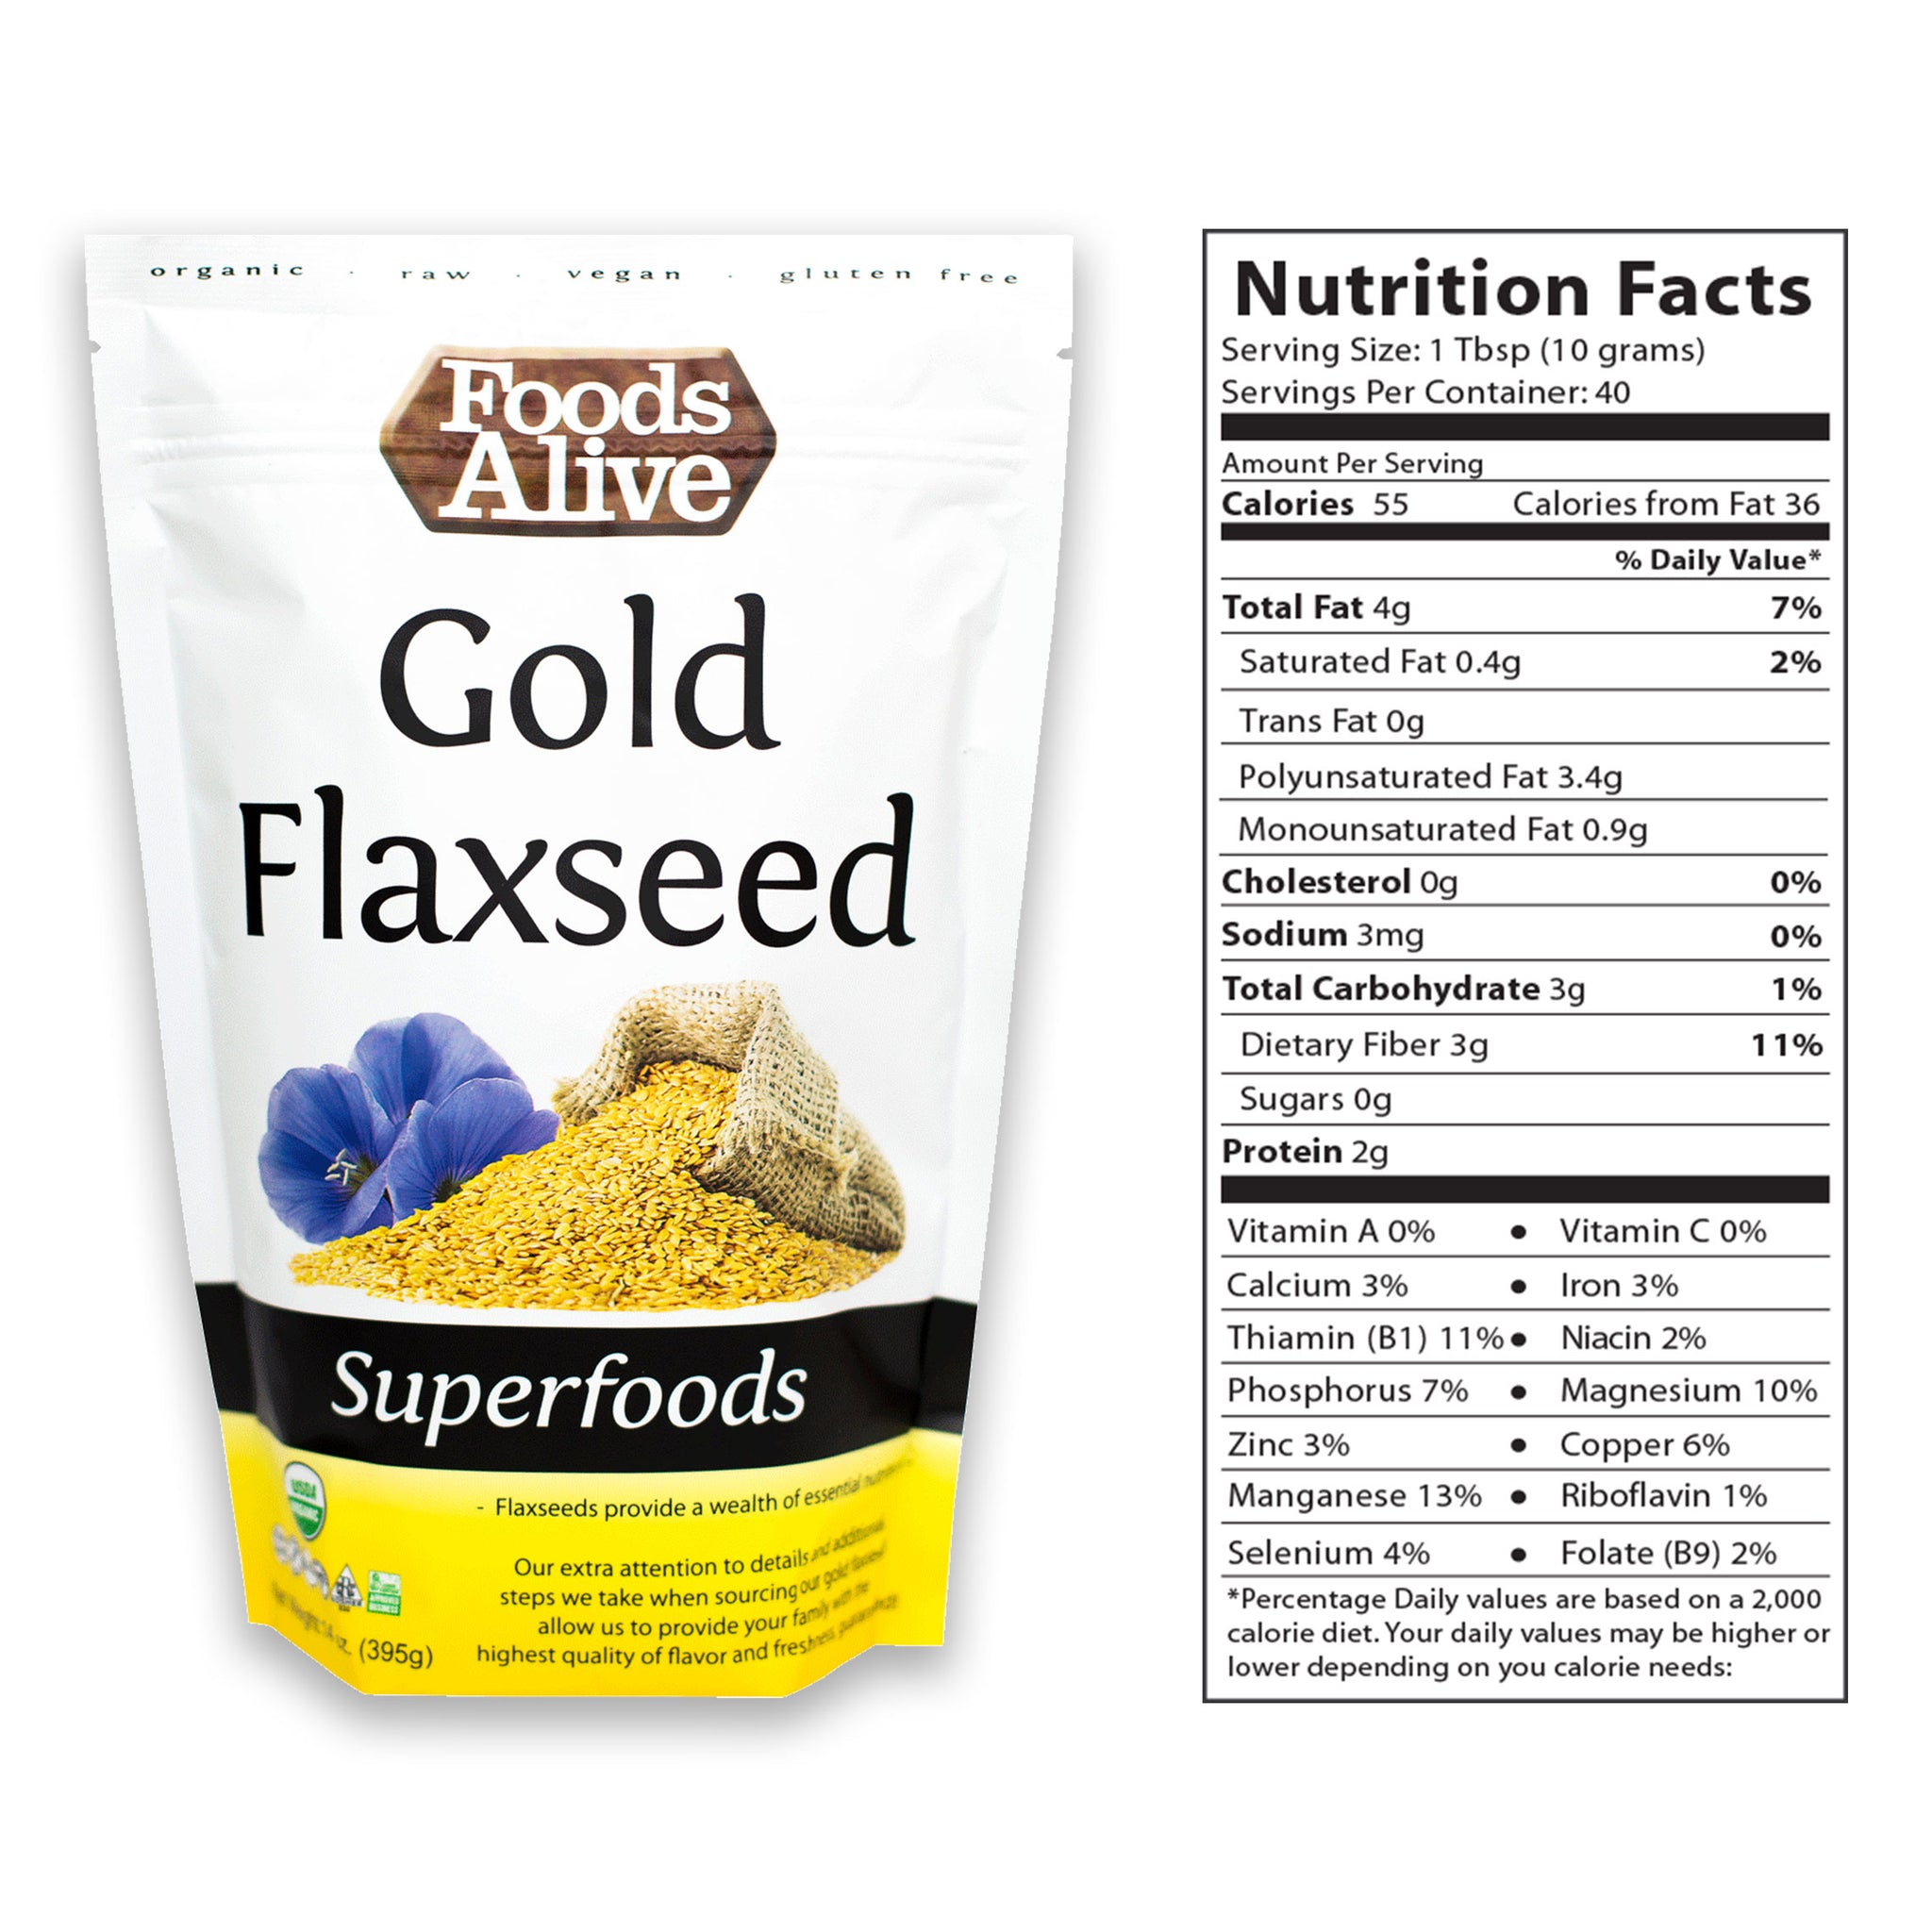 14oz Golden Flax Seed with Nutritional Panel - Foods Alive